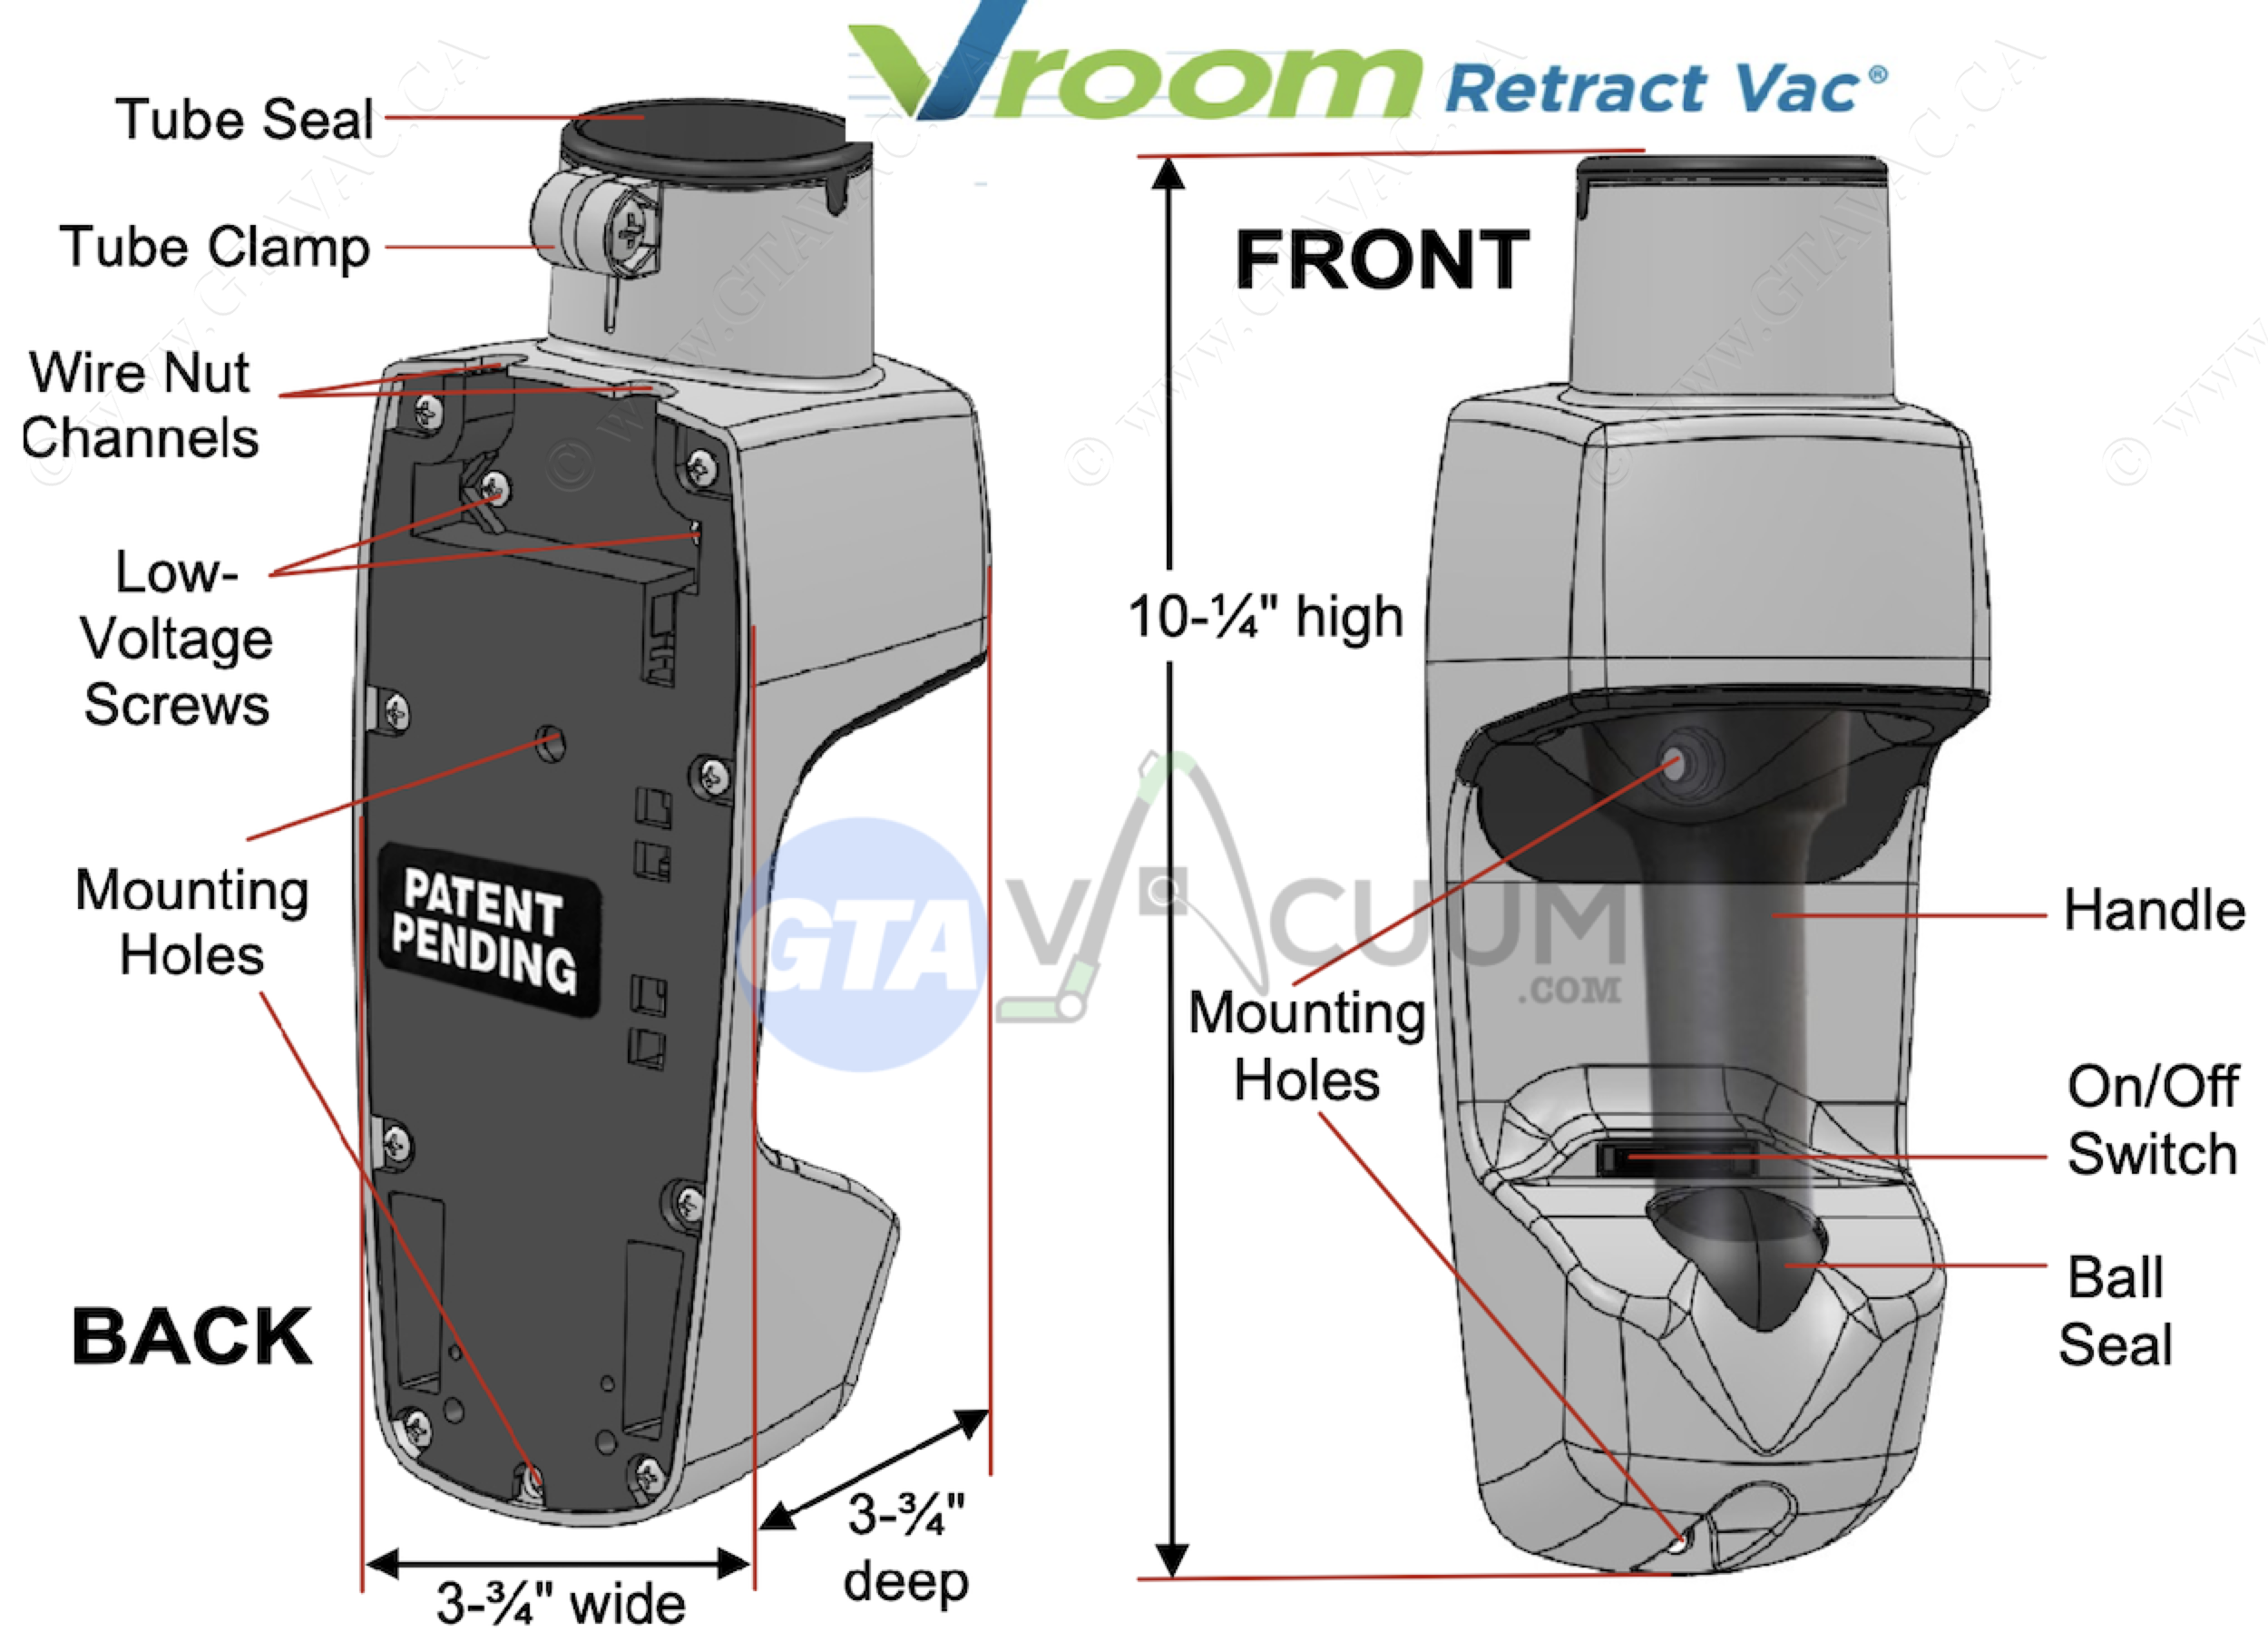 Vroom Retract Vac Surface Mount Valve RoughIn Specification png